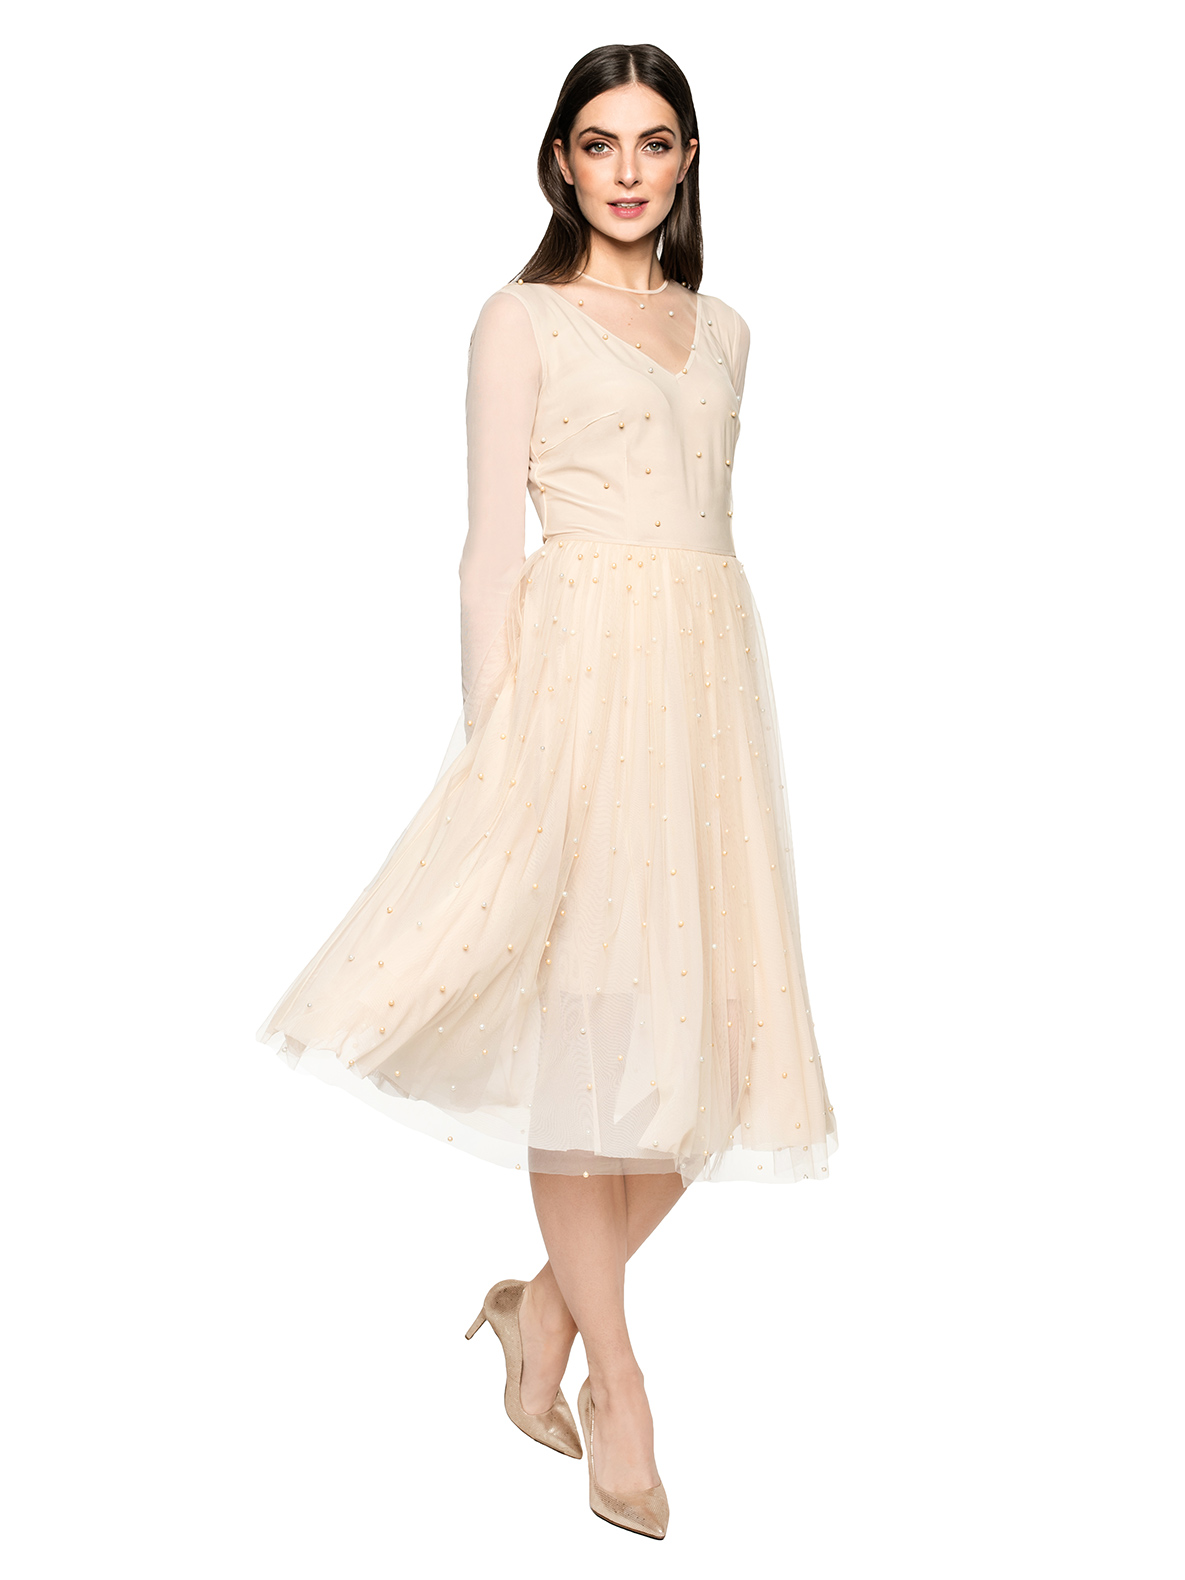 Dress CINDERELLA beige